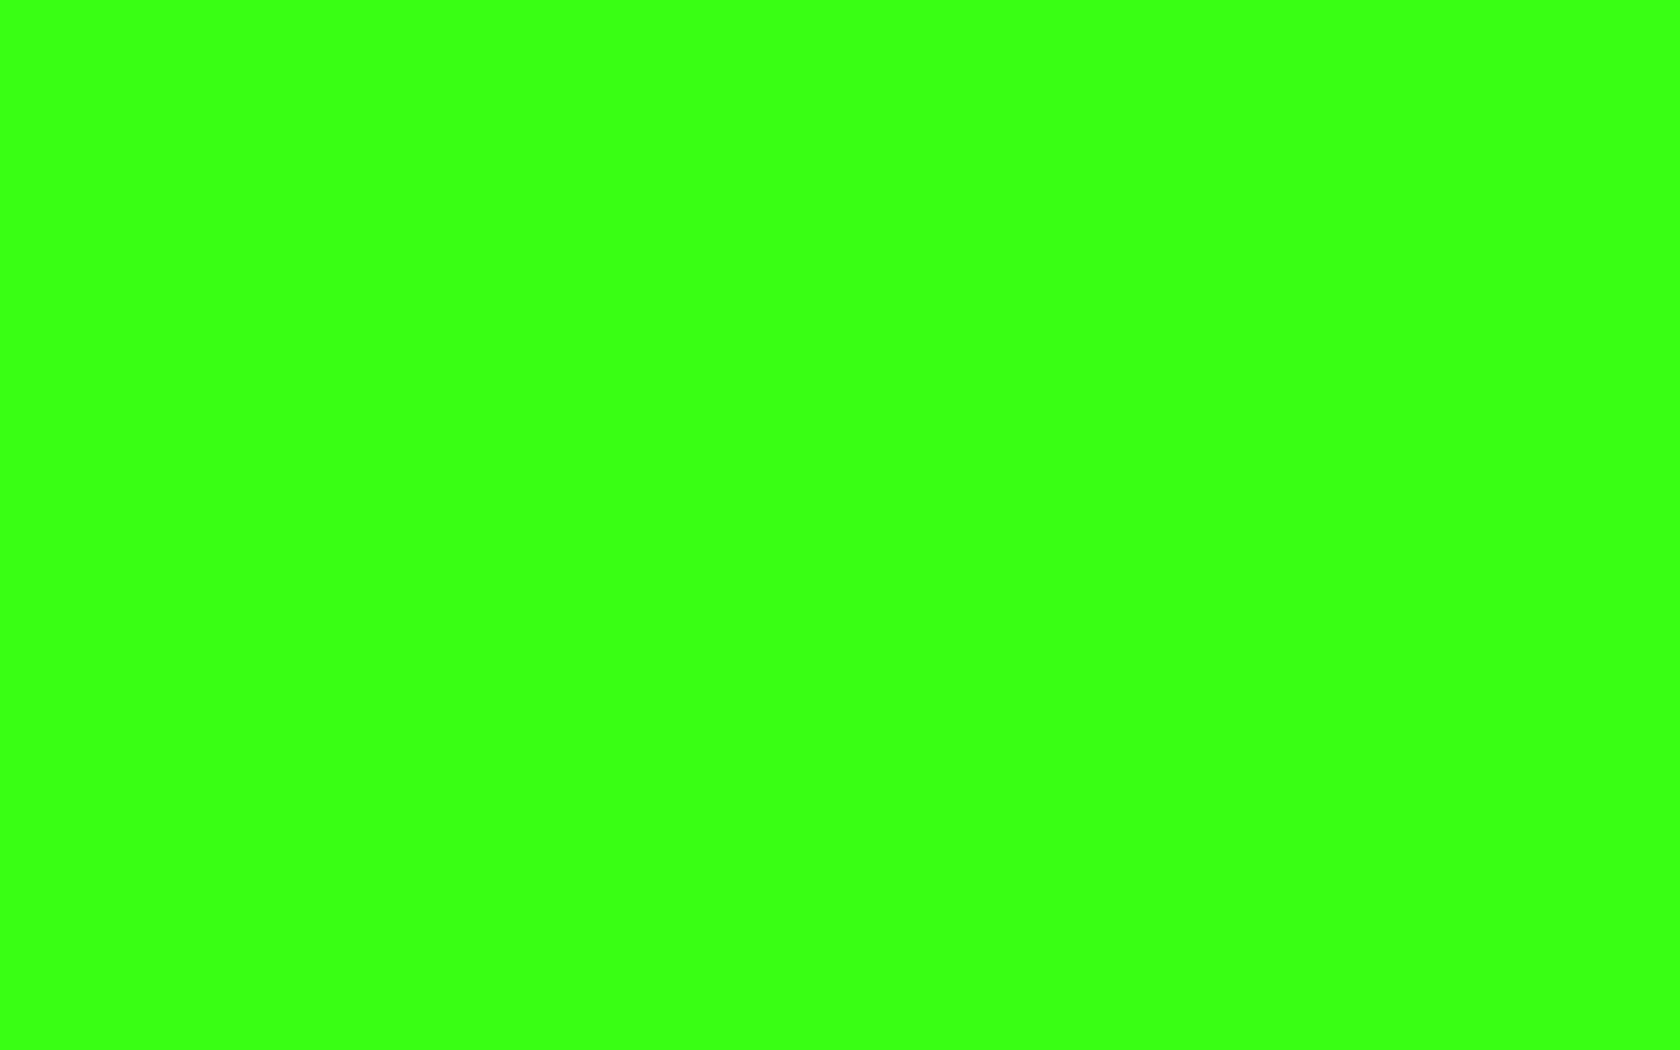 1680x1050 Neon Green Solid Color Background